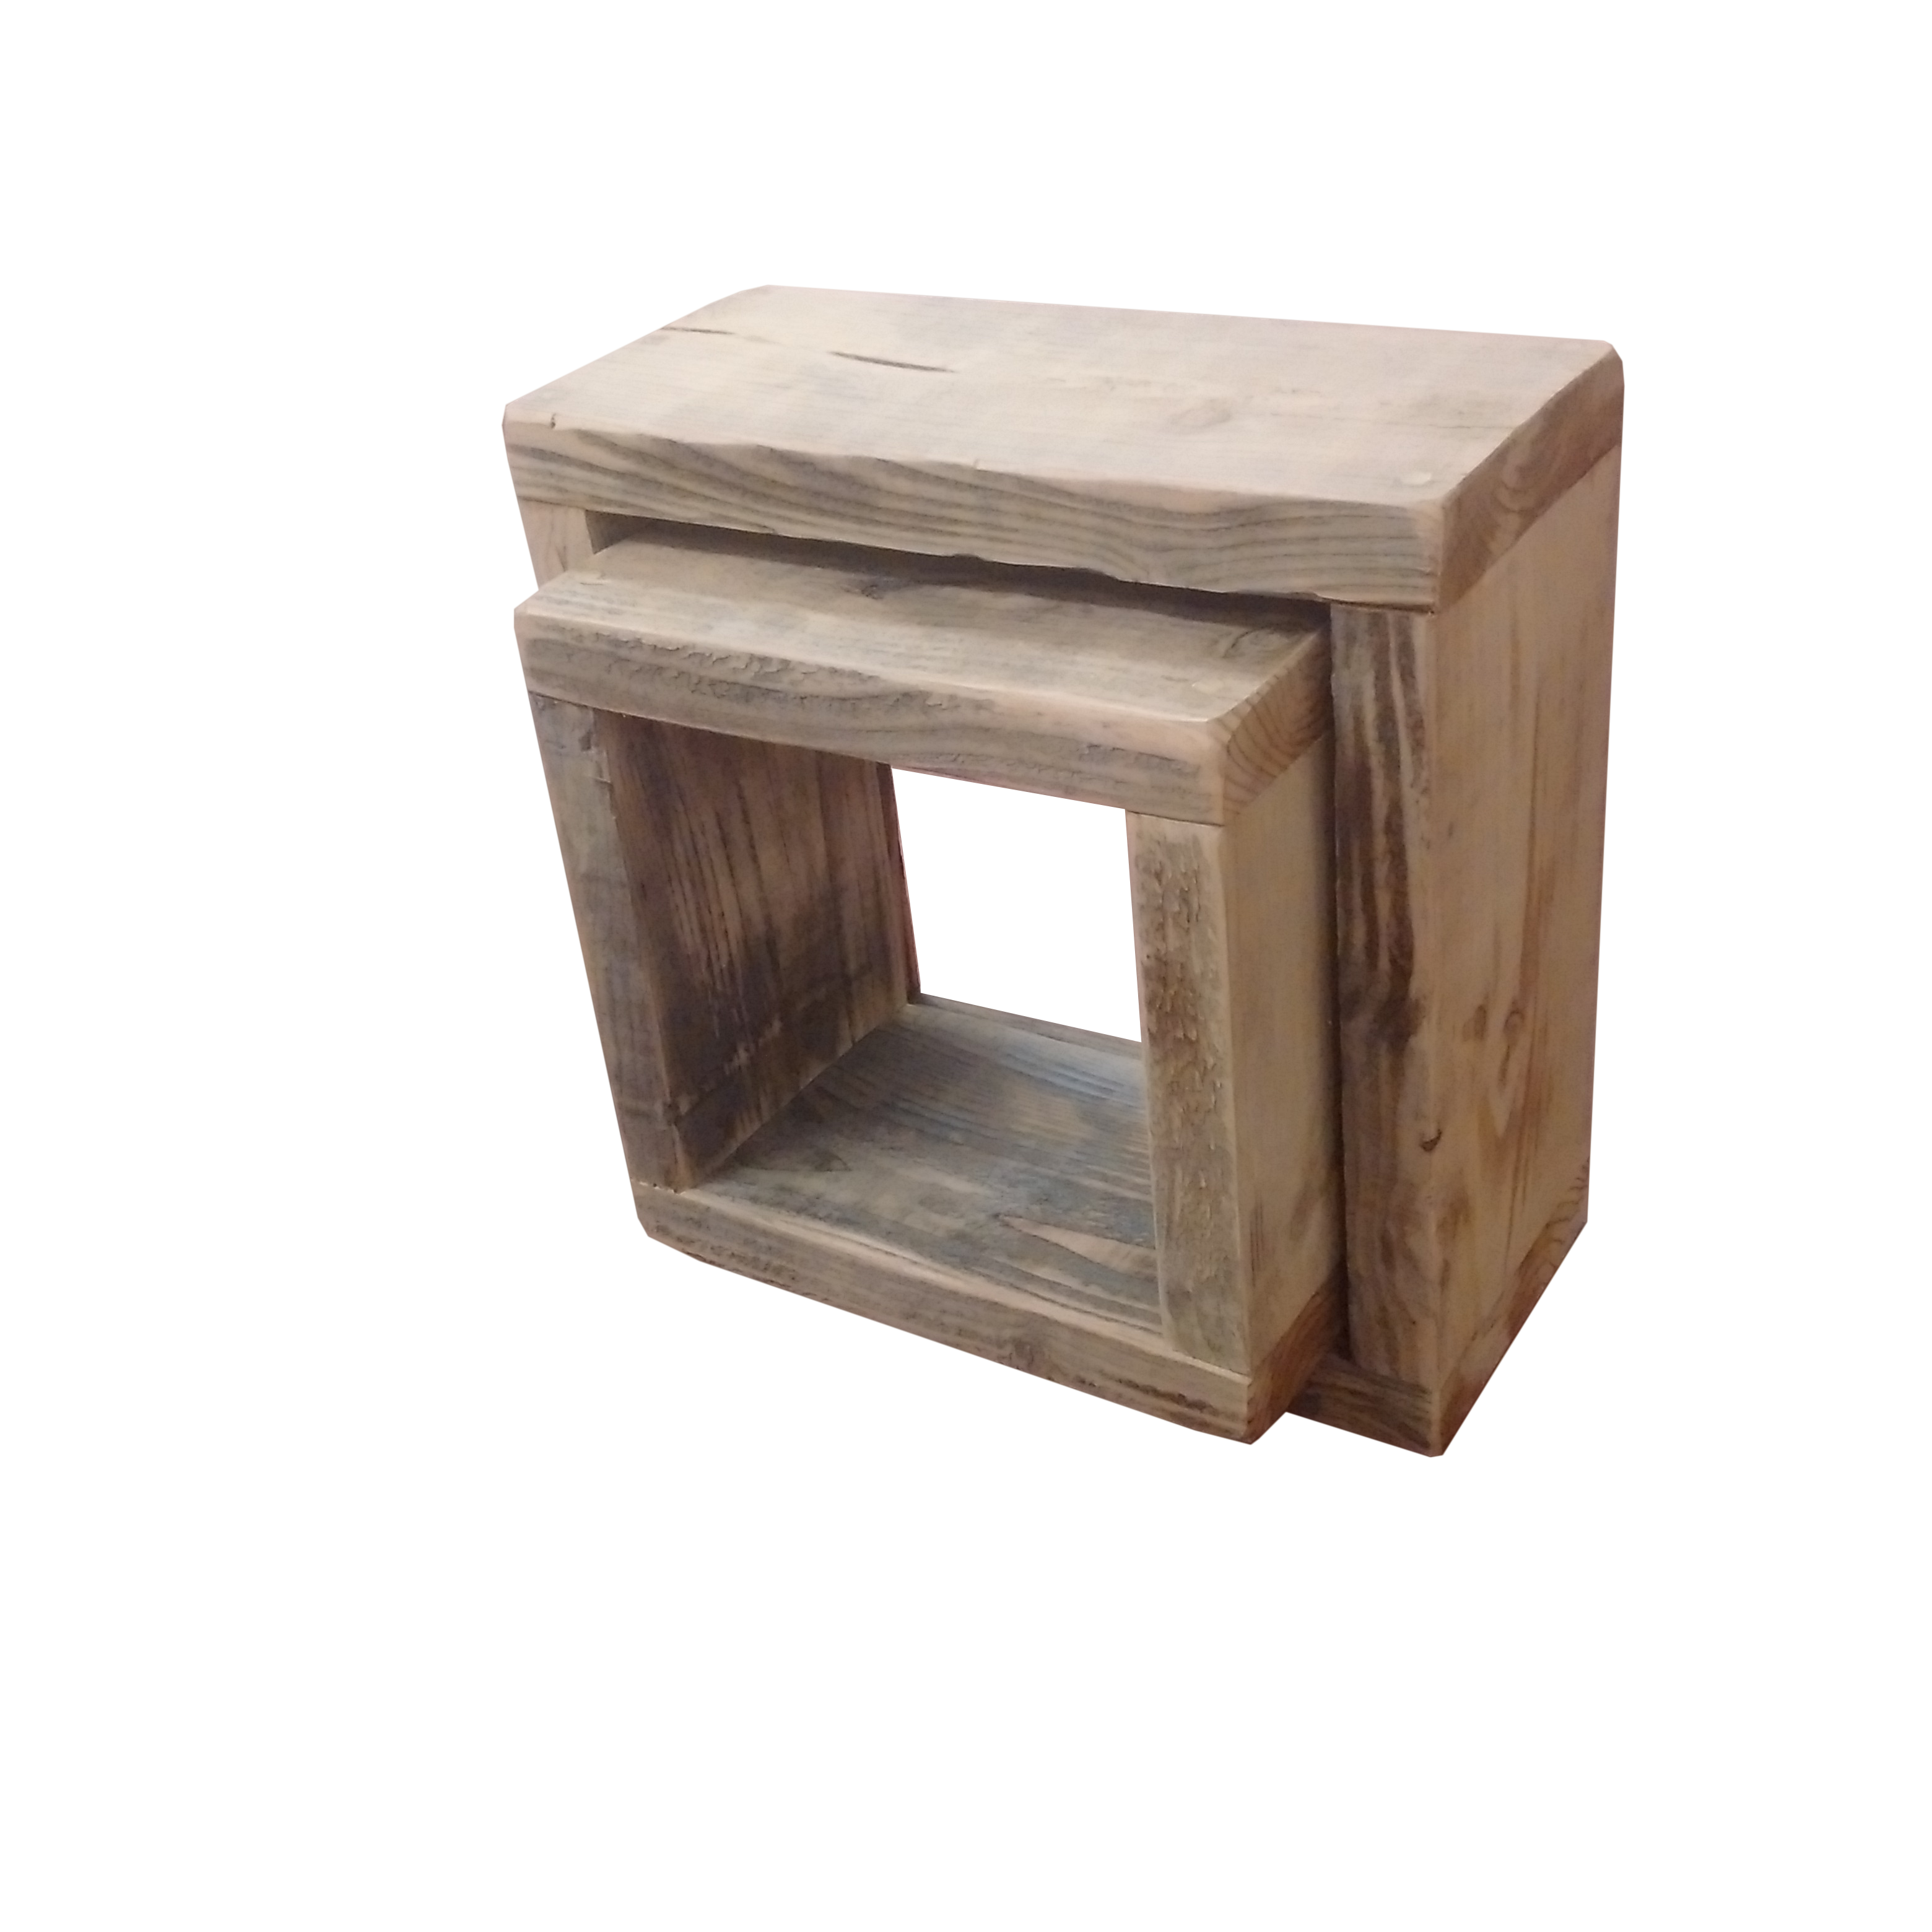 The Cube Unit Nest Ely Rustic Furniture